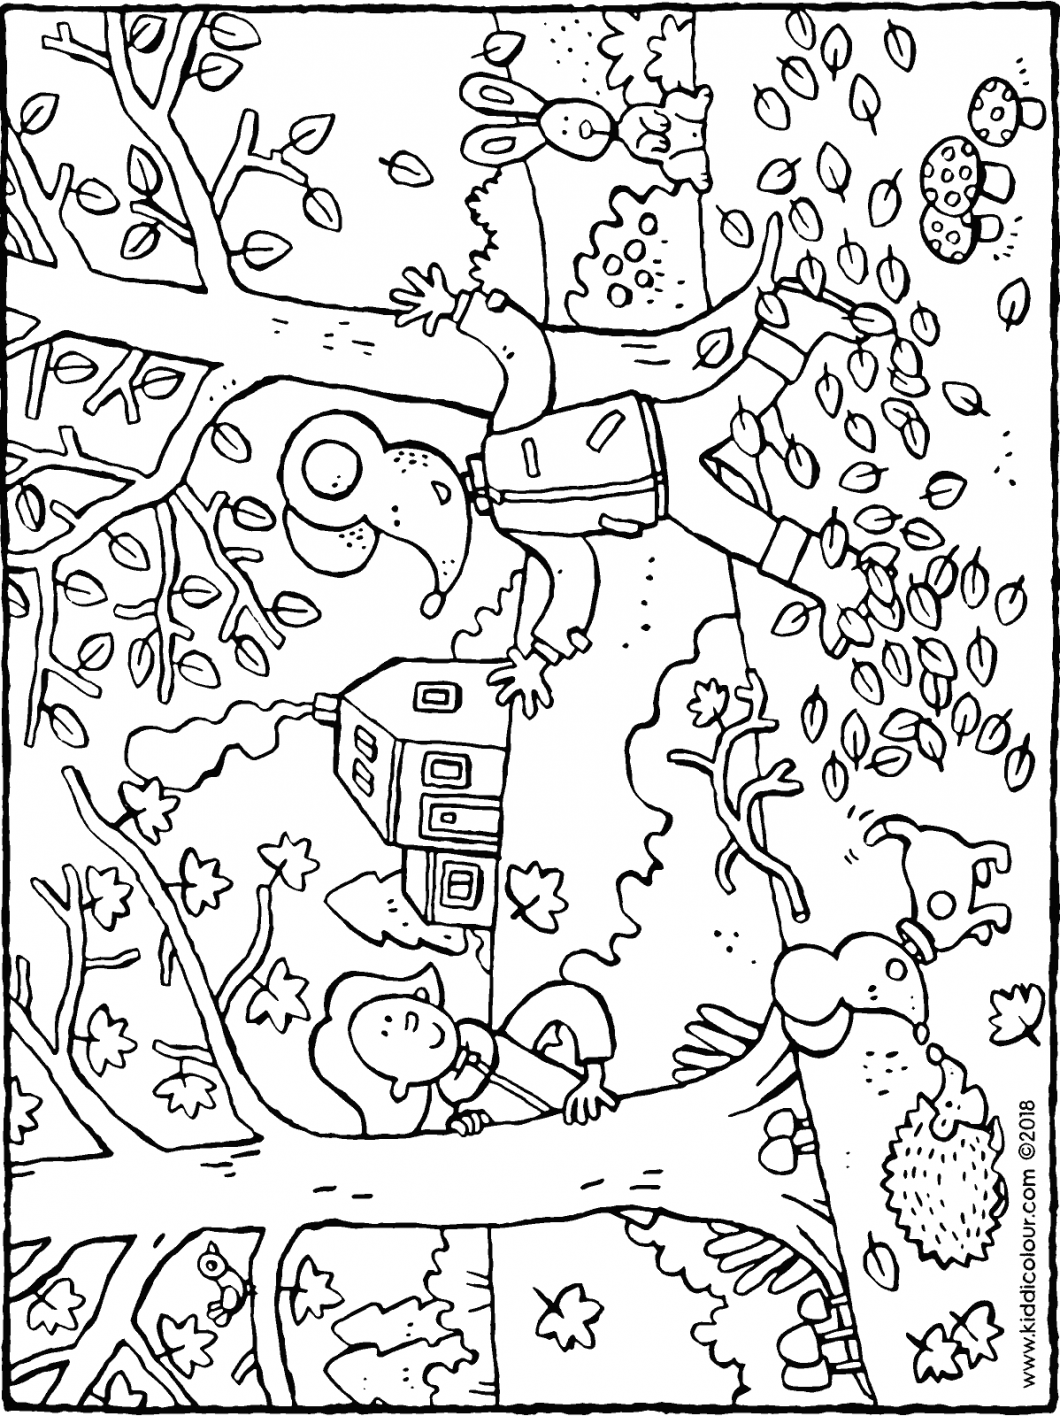 autumn with Emma and Thomas colouring page drawing picture 01H